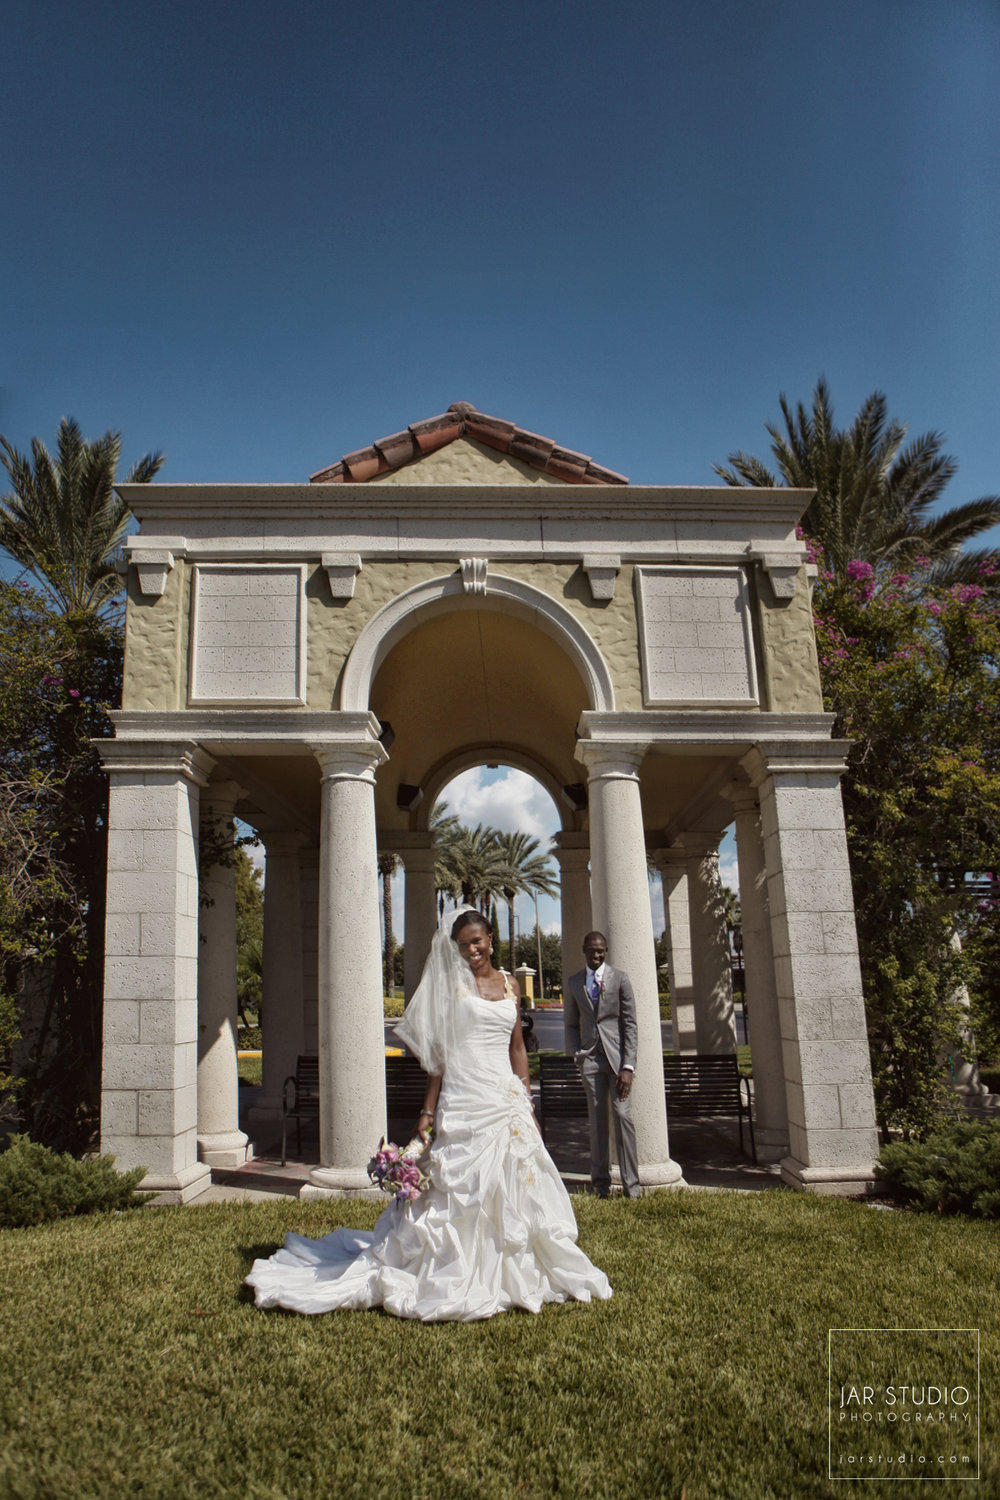 21-Hilton-Grand-Tuscany-Village-wedding-best-venues-orlando-fl-photographer-jarstudio.JPG